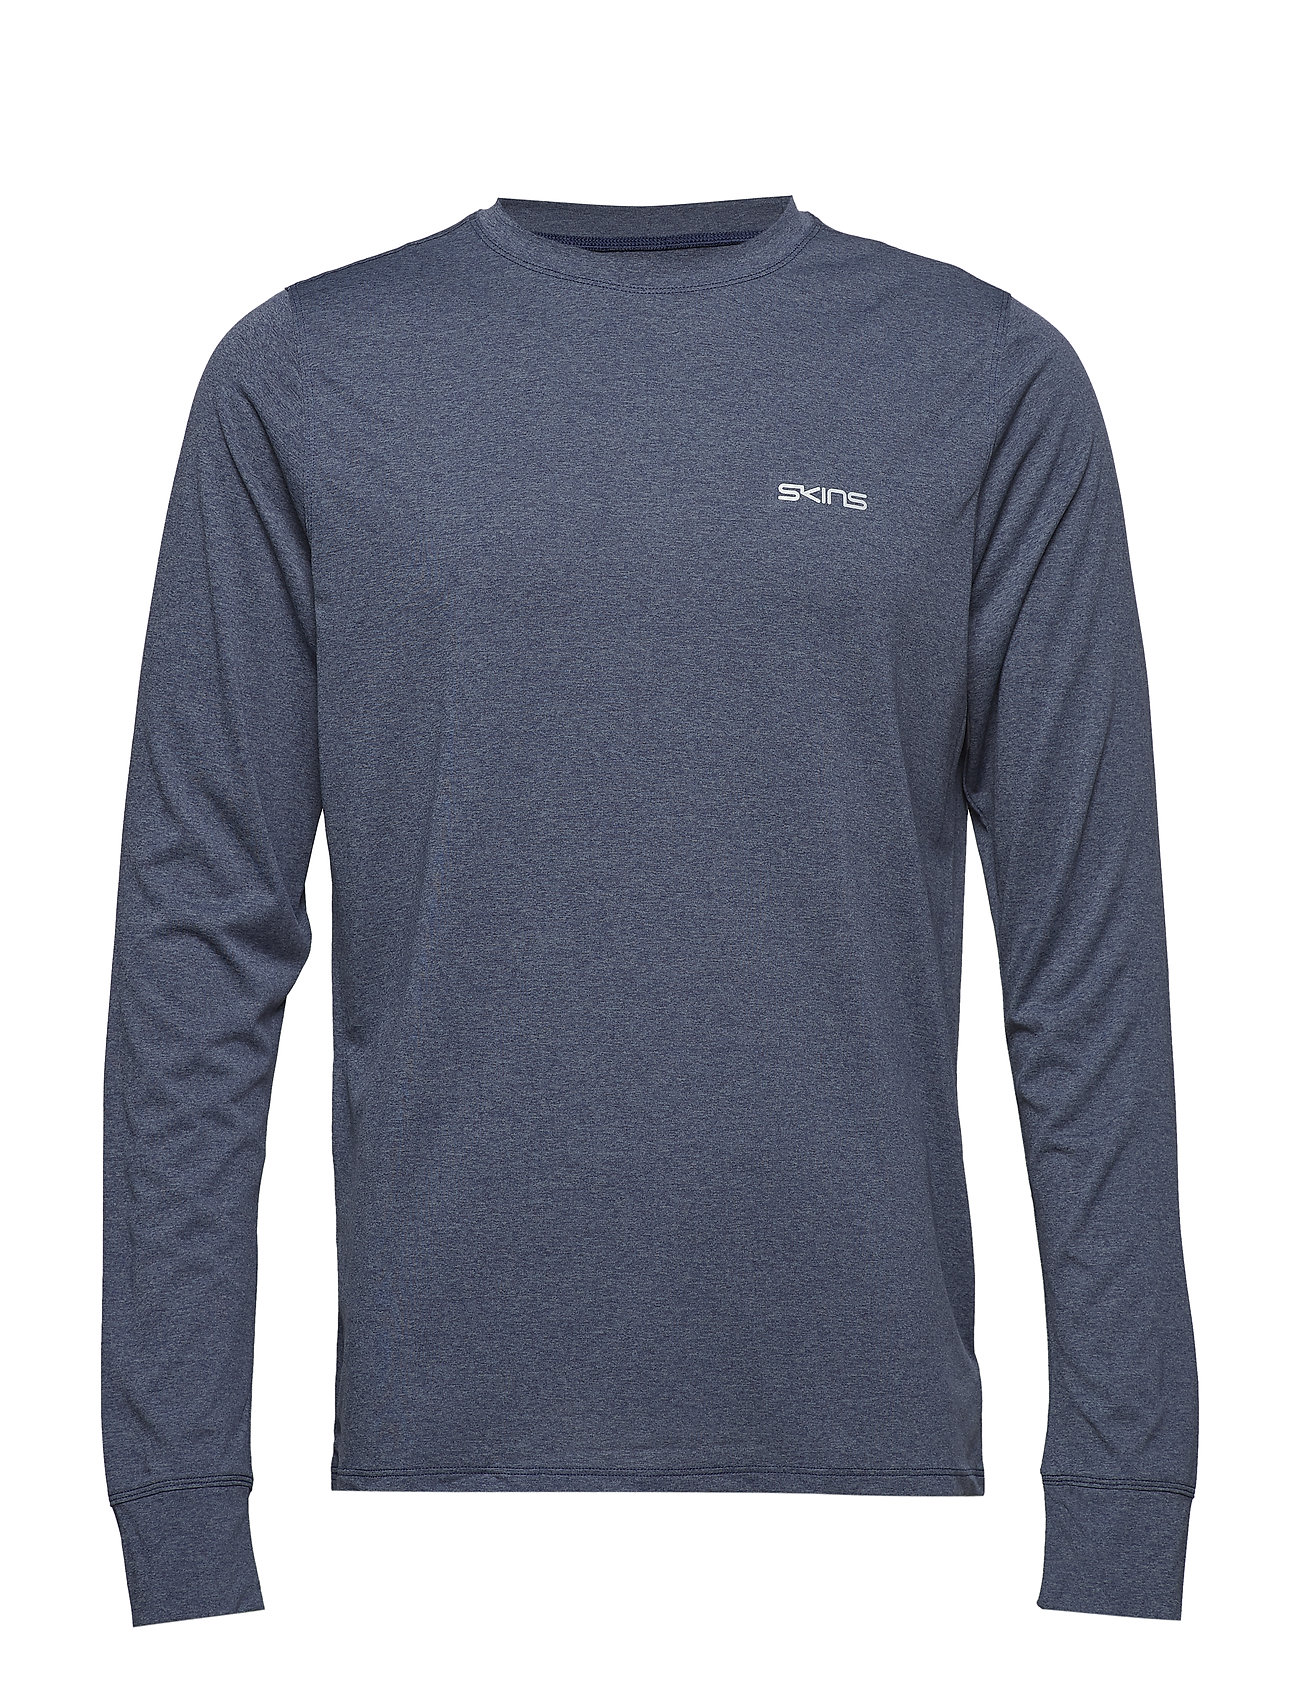 Skins Activewear Bergmar Mens Active Top L/S Round Neck - NAVY BLUE MARLE